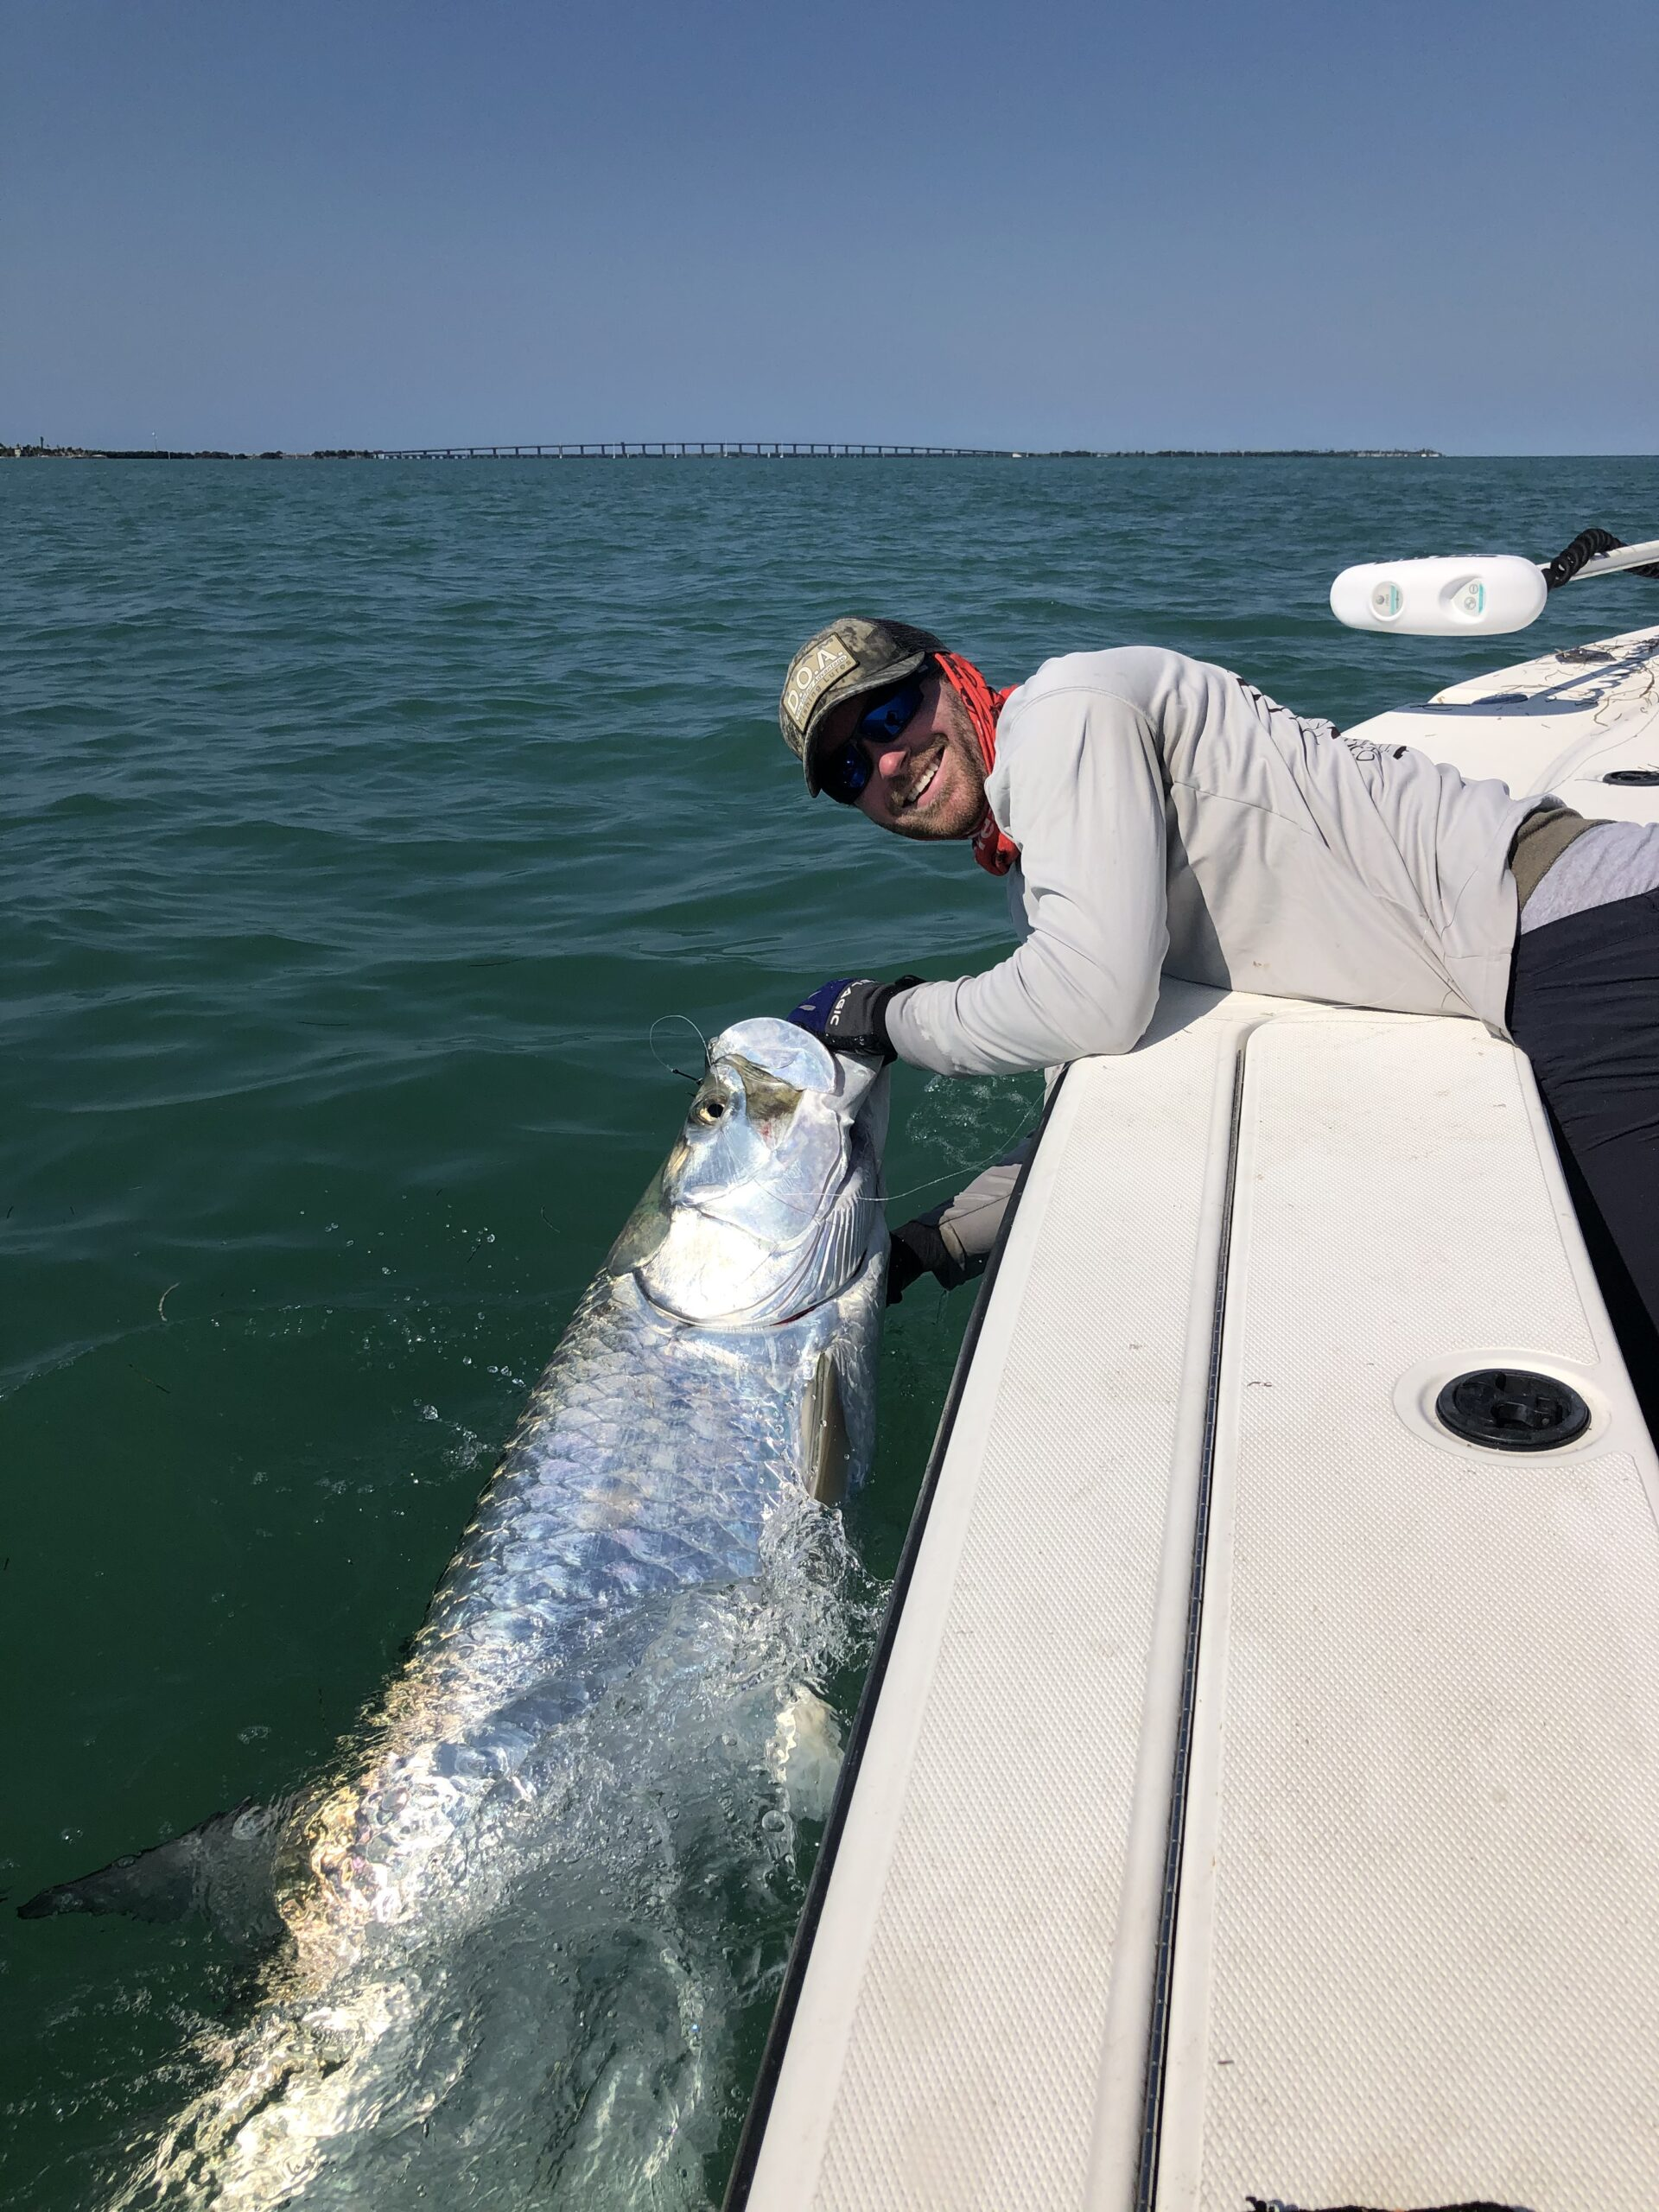 Smiling man and Tarpon at the boat. Opens a photo gallery.